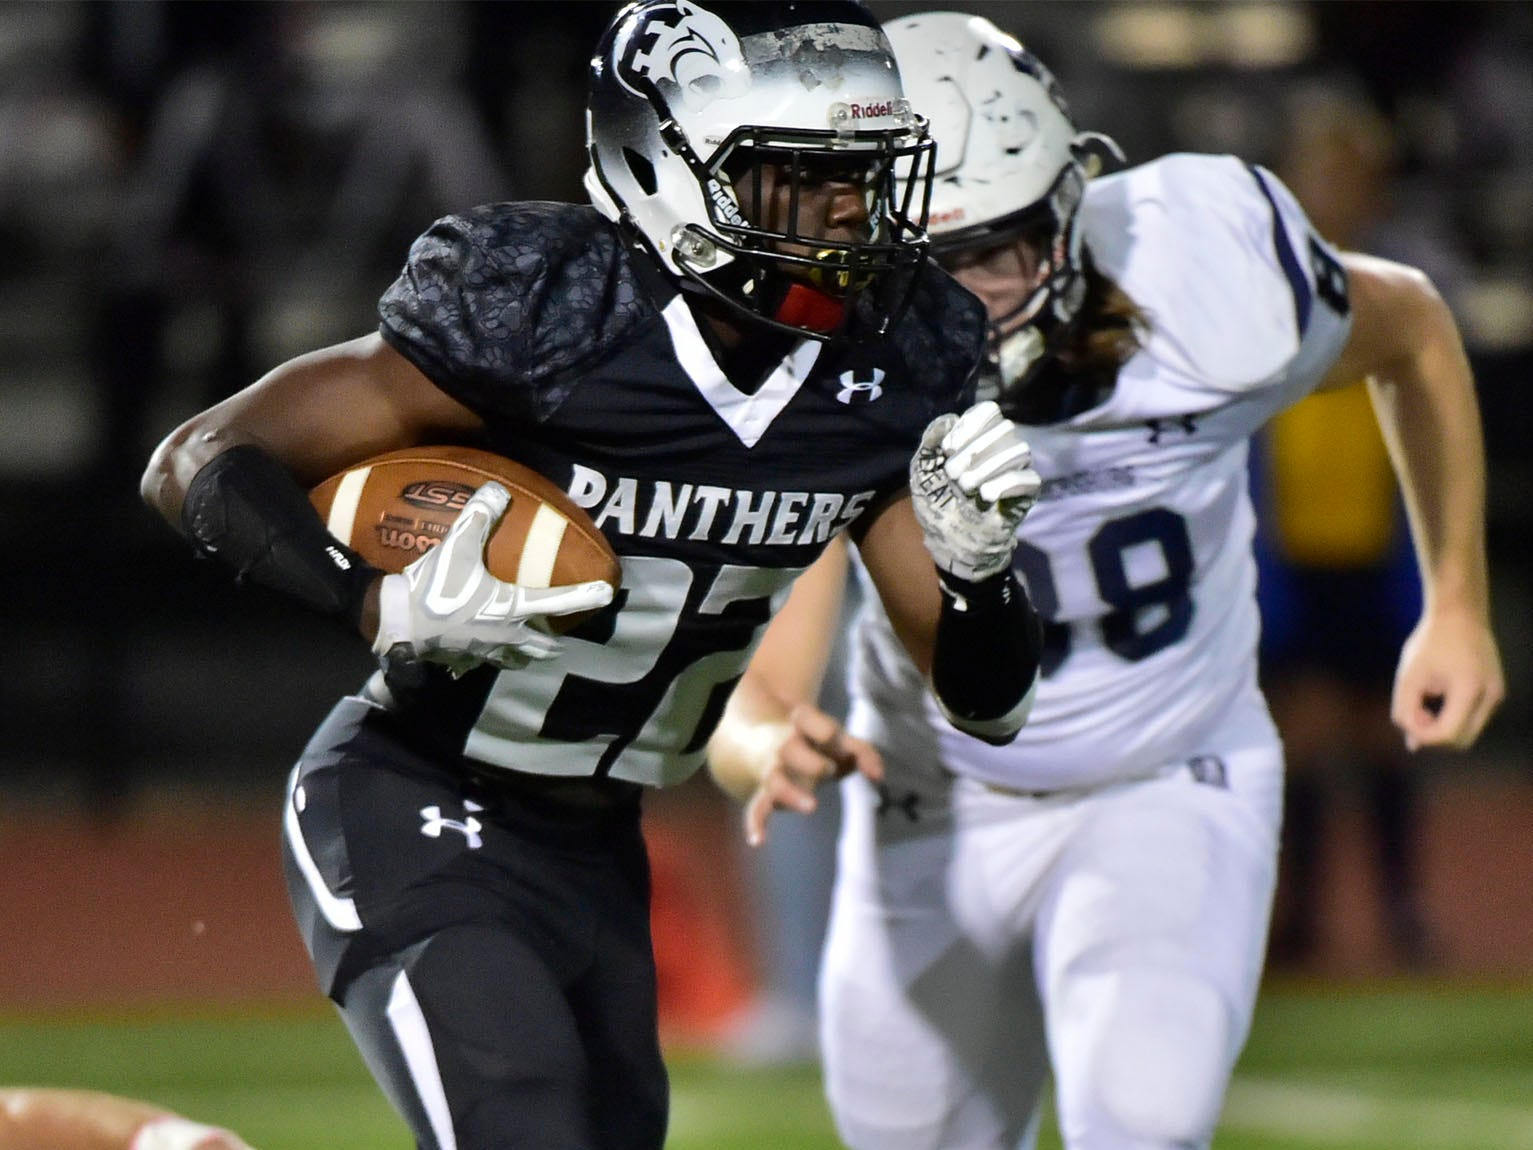 Central Dauphin East's Emmanuel Niang runs the ball for the Panthers as Chambersburg's Garner Funk gives chase. Chambersburg Trojans jumped ahead of Central Dauphin East to win 26-20 in PIAA football on Friday, October 5, 2018.